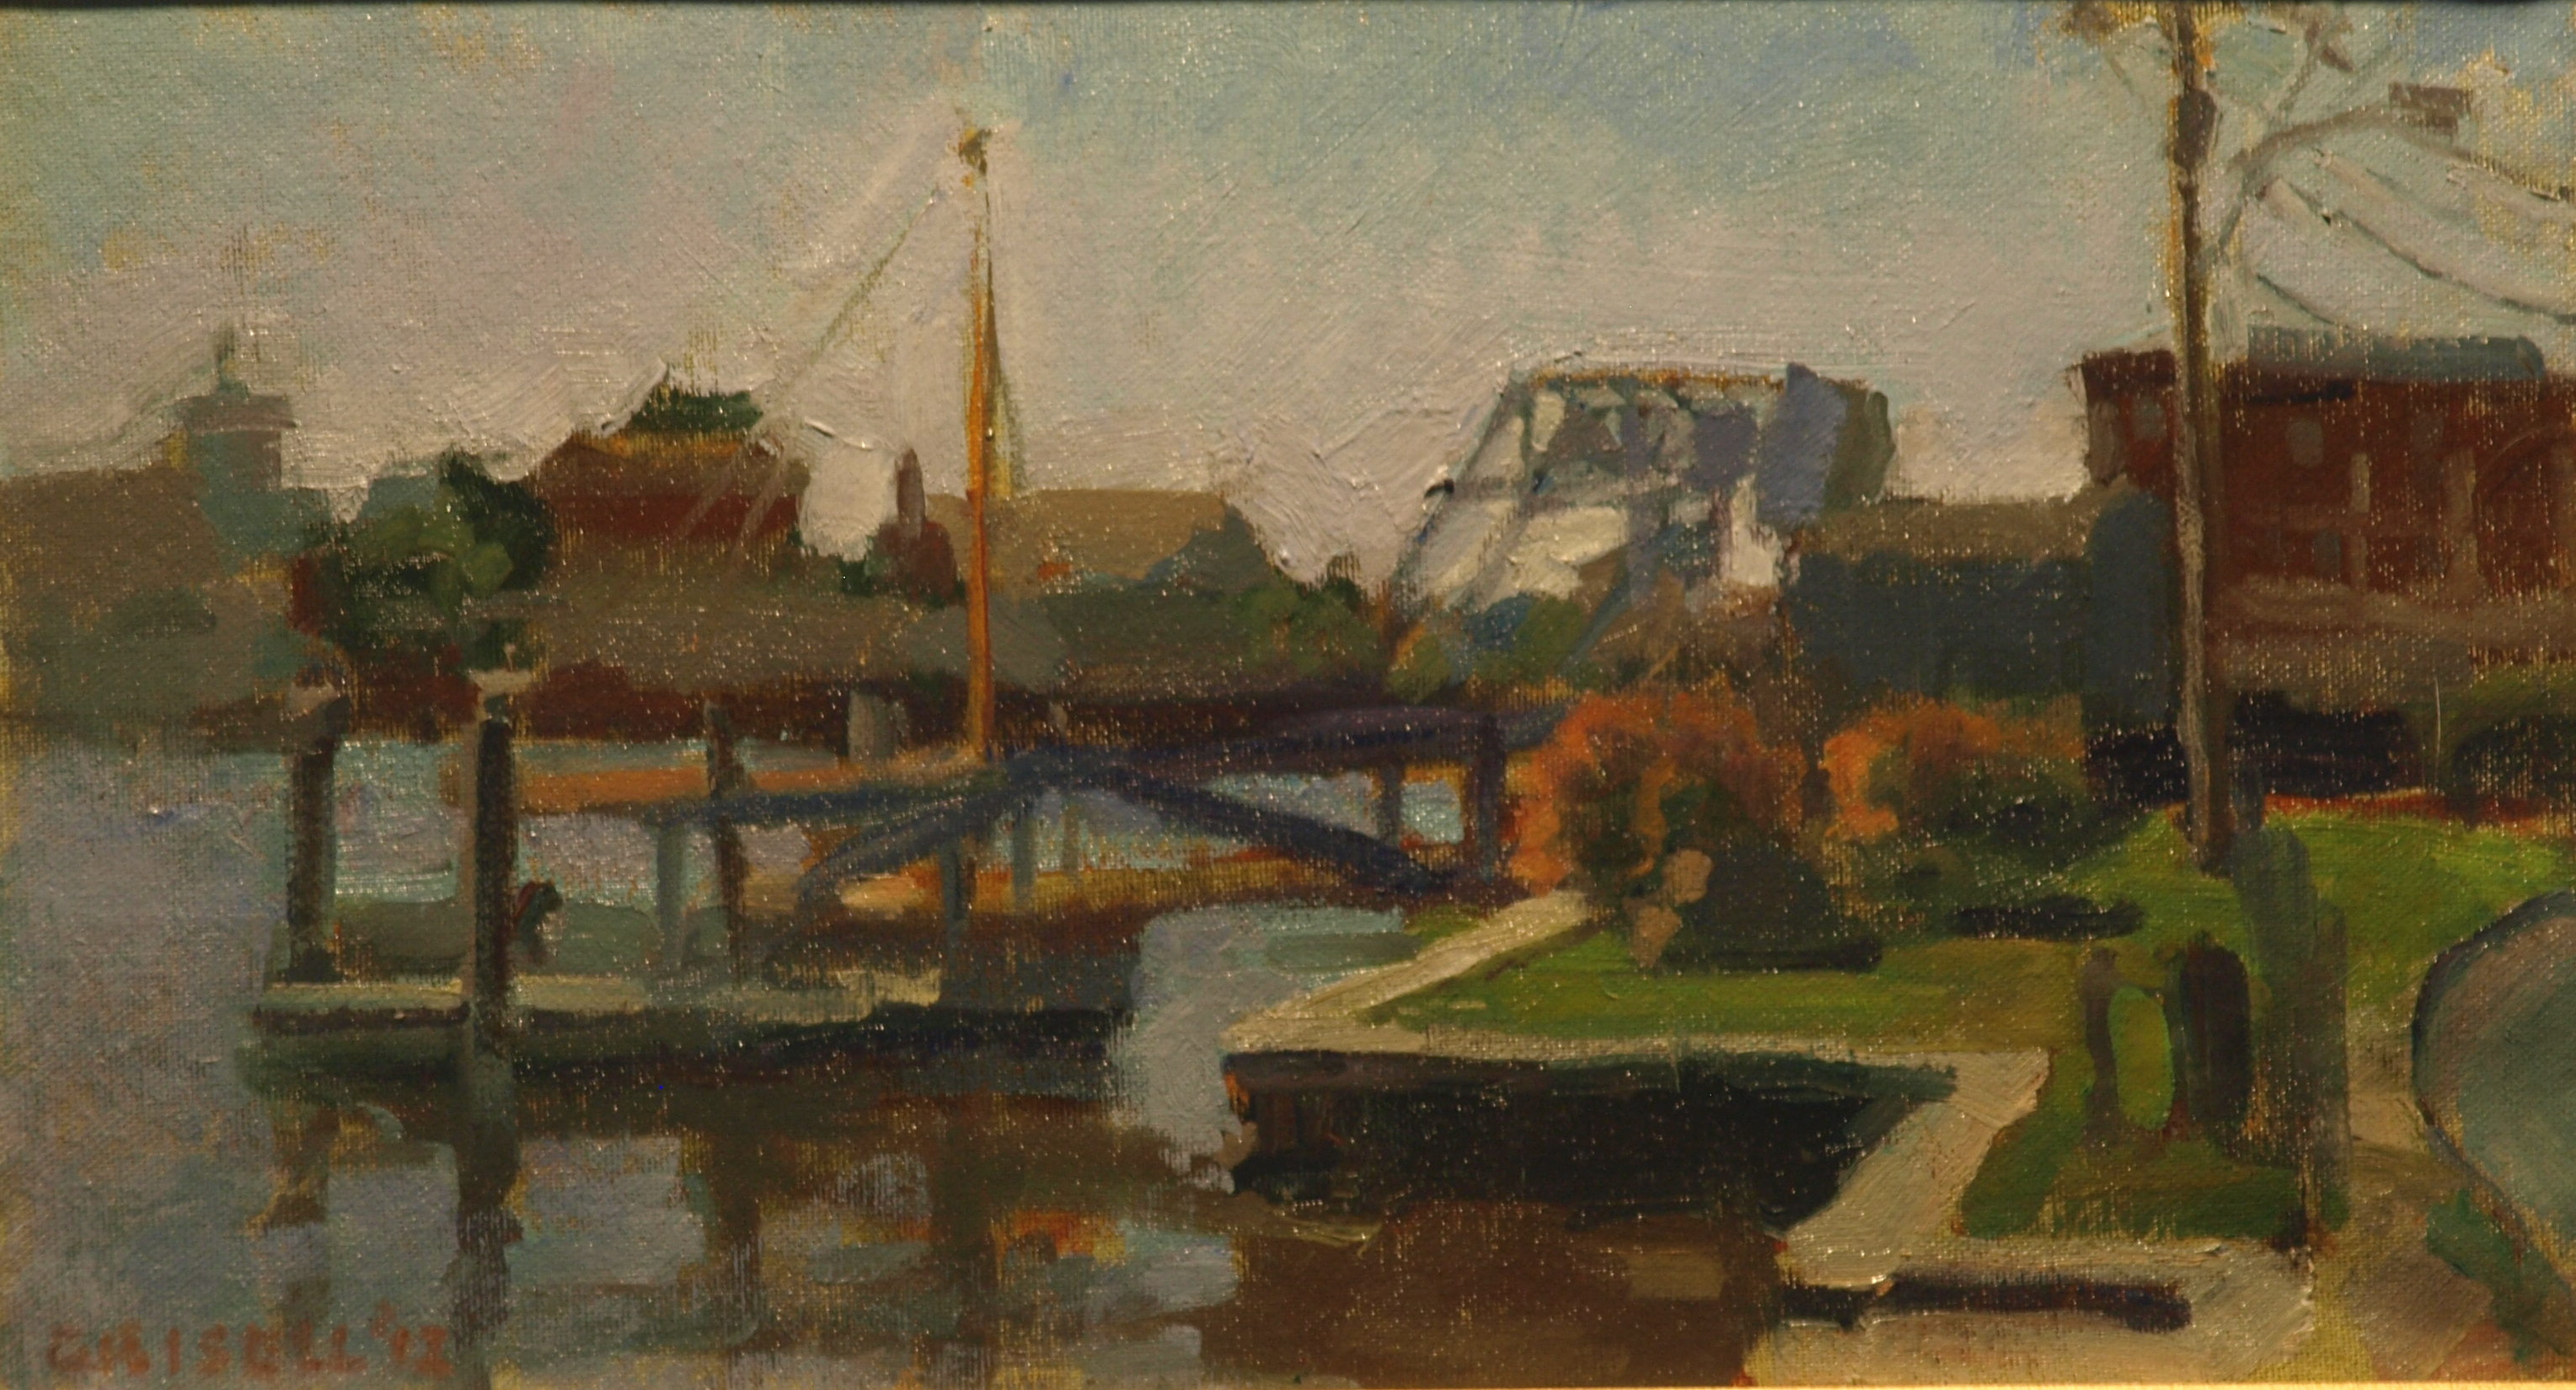 Draw Bridge, Mystic River, Oil on Canvas on Panel, 9 x 16 Inches, by Susan Grisell, $250